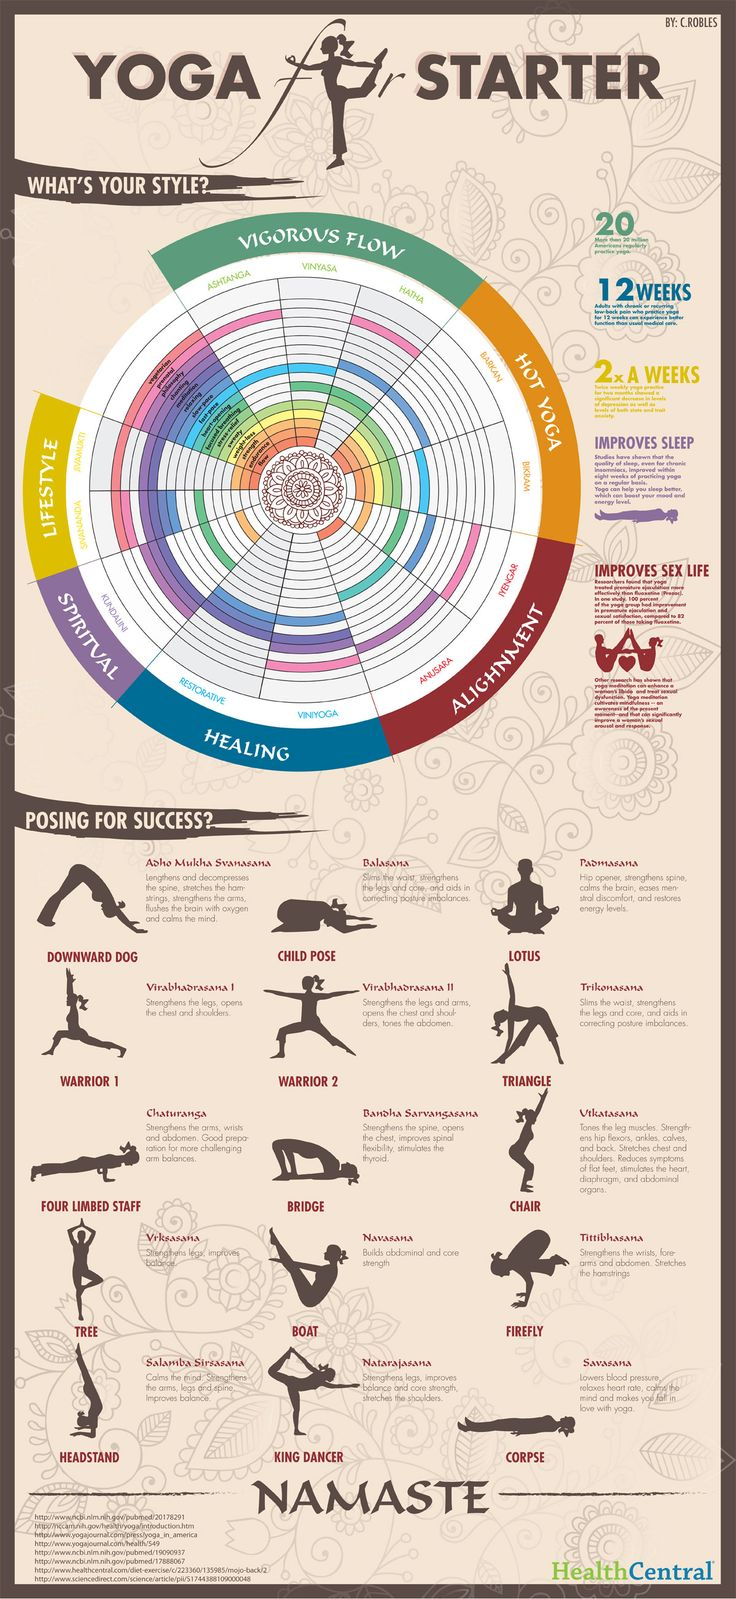 #Yoga for Starters #Infographic Loved and pinned by www.downdogboutique.com